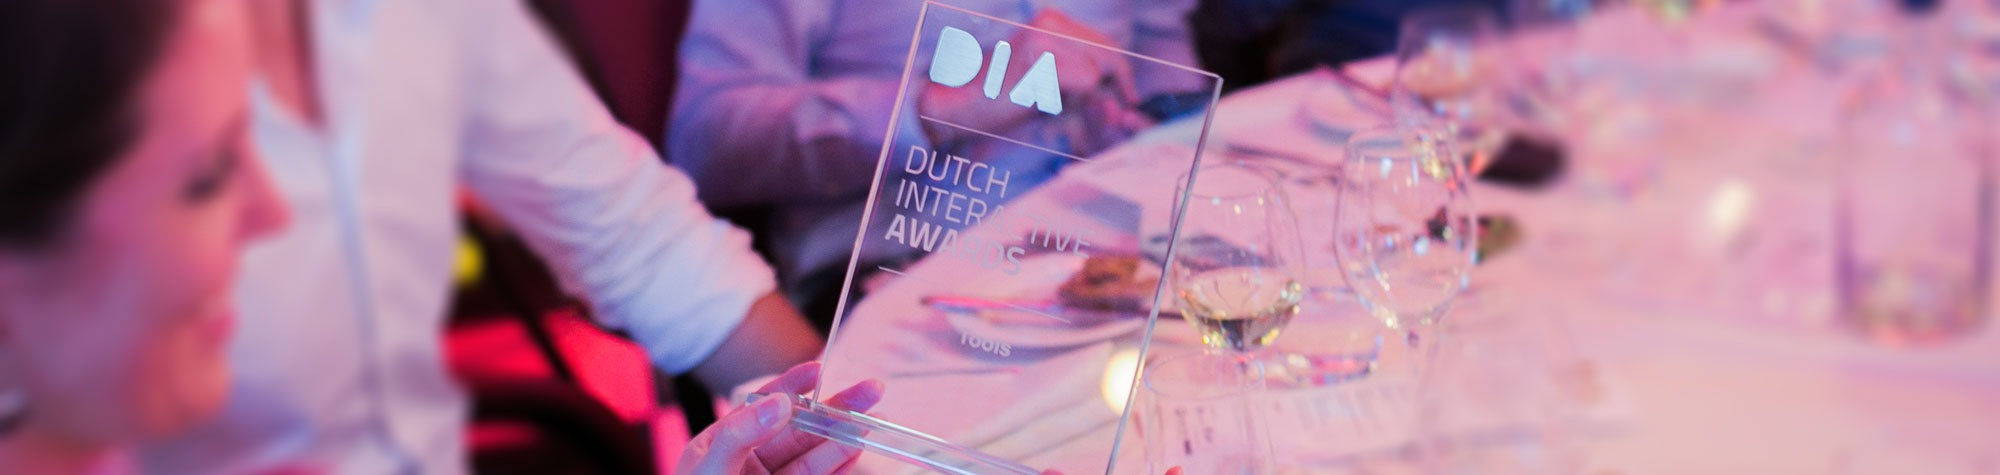 Resono wins Dutch Interactive Award!